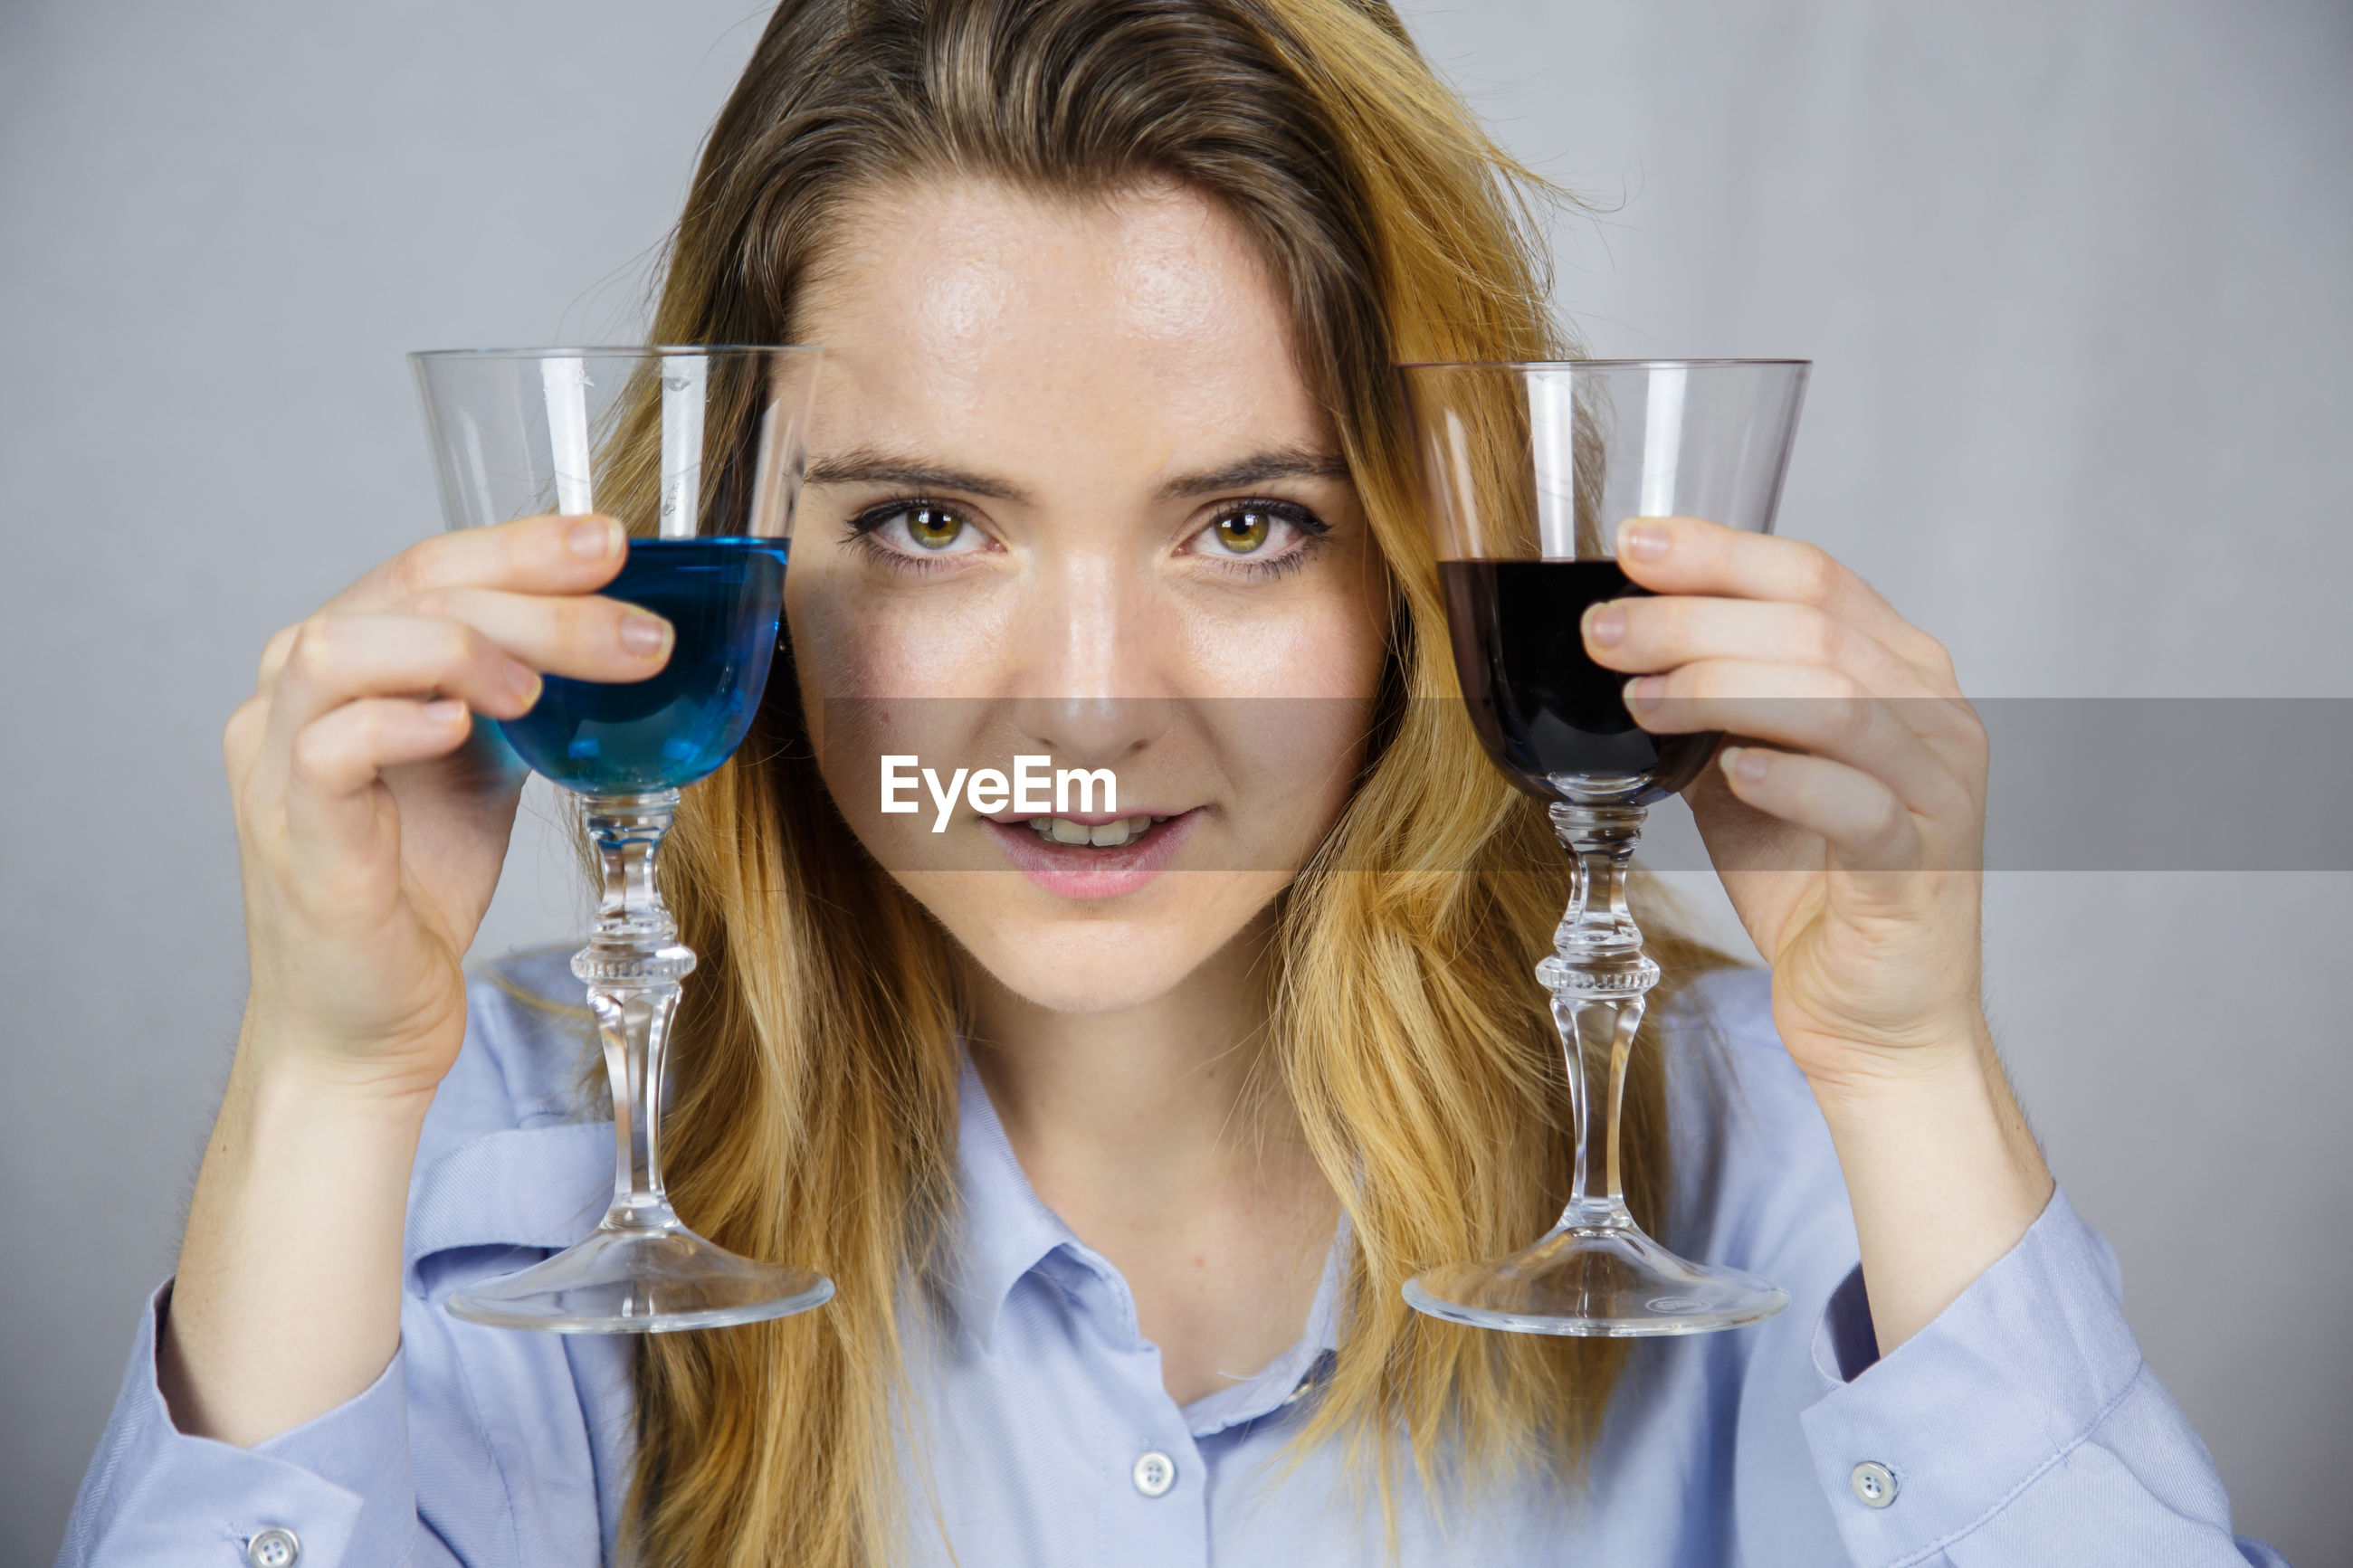 Portrait of young woman having drink in wineglasses against backdrop